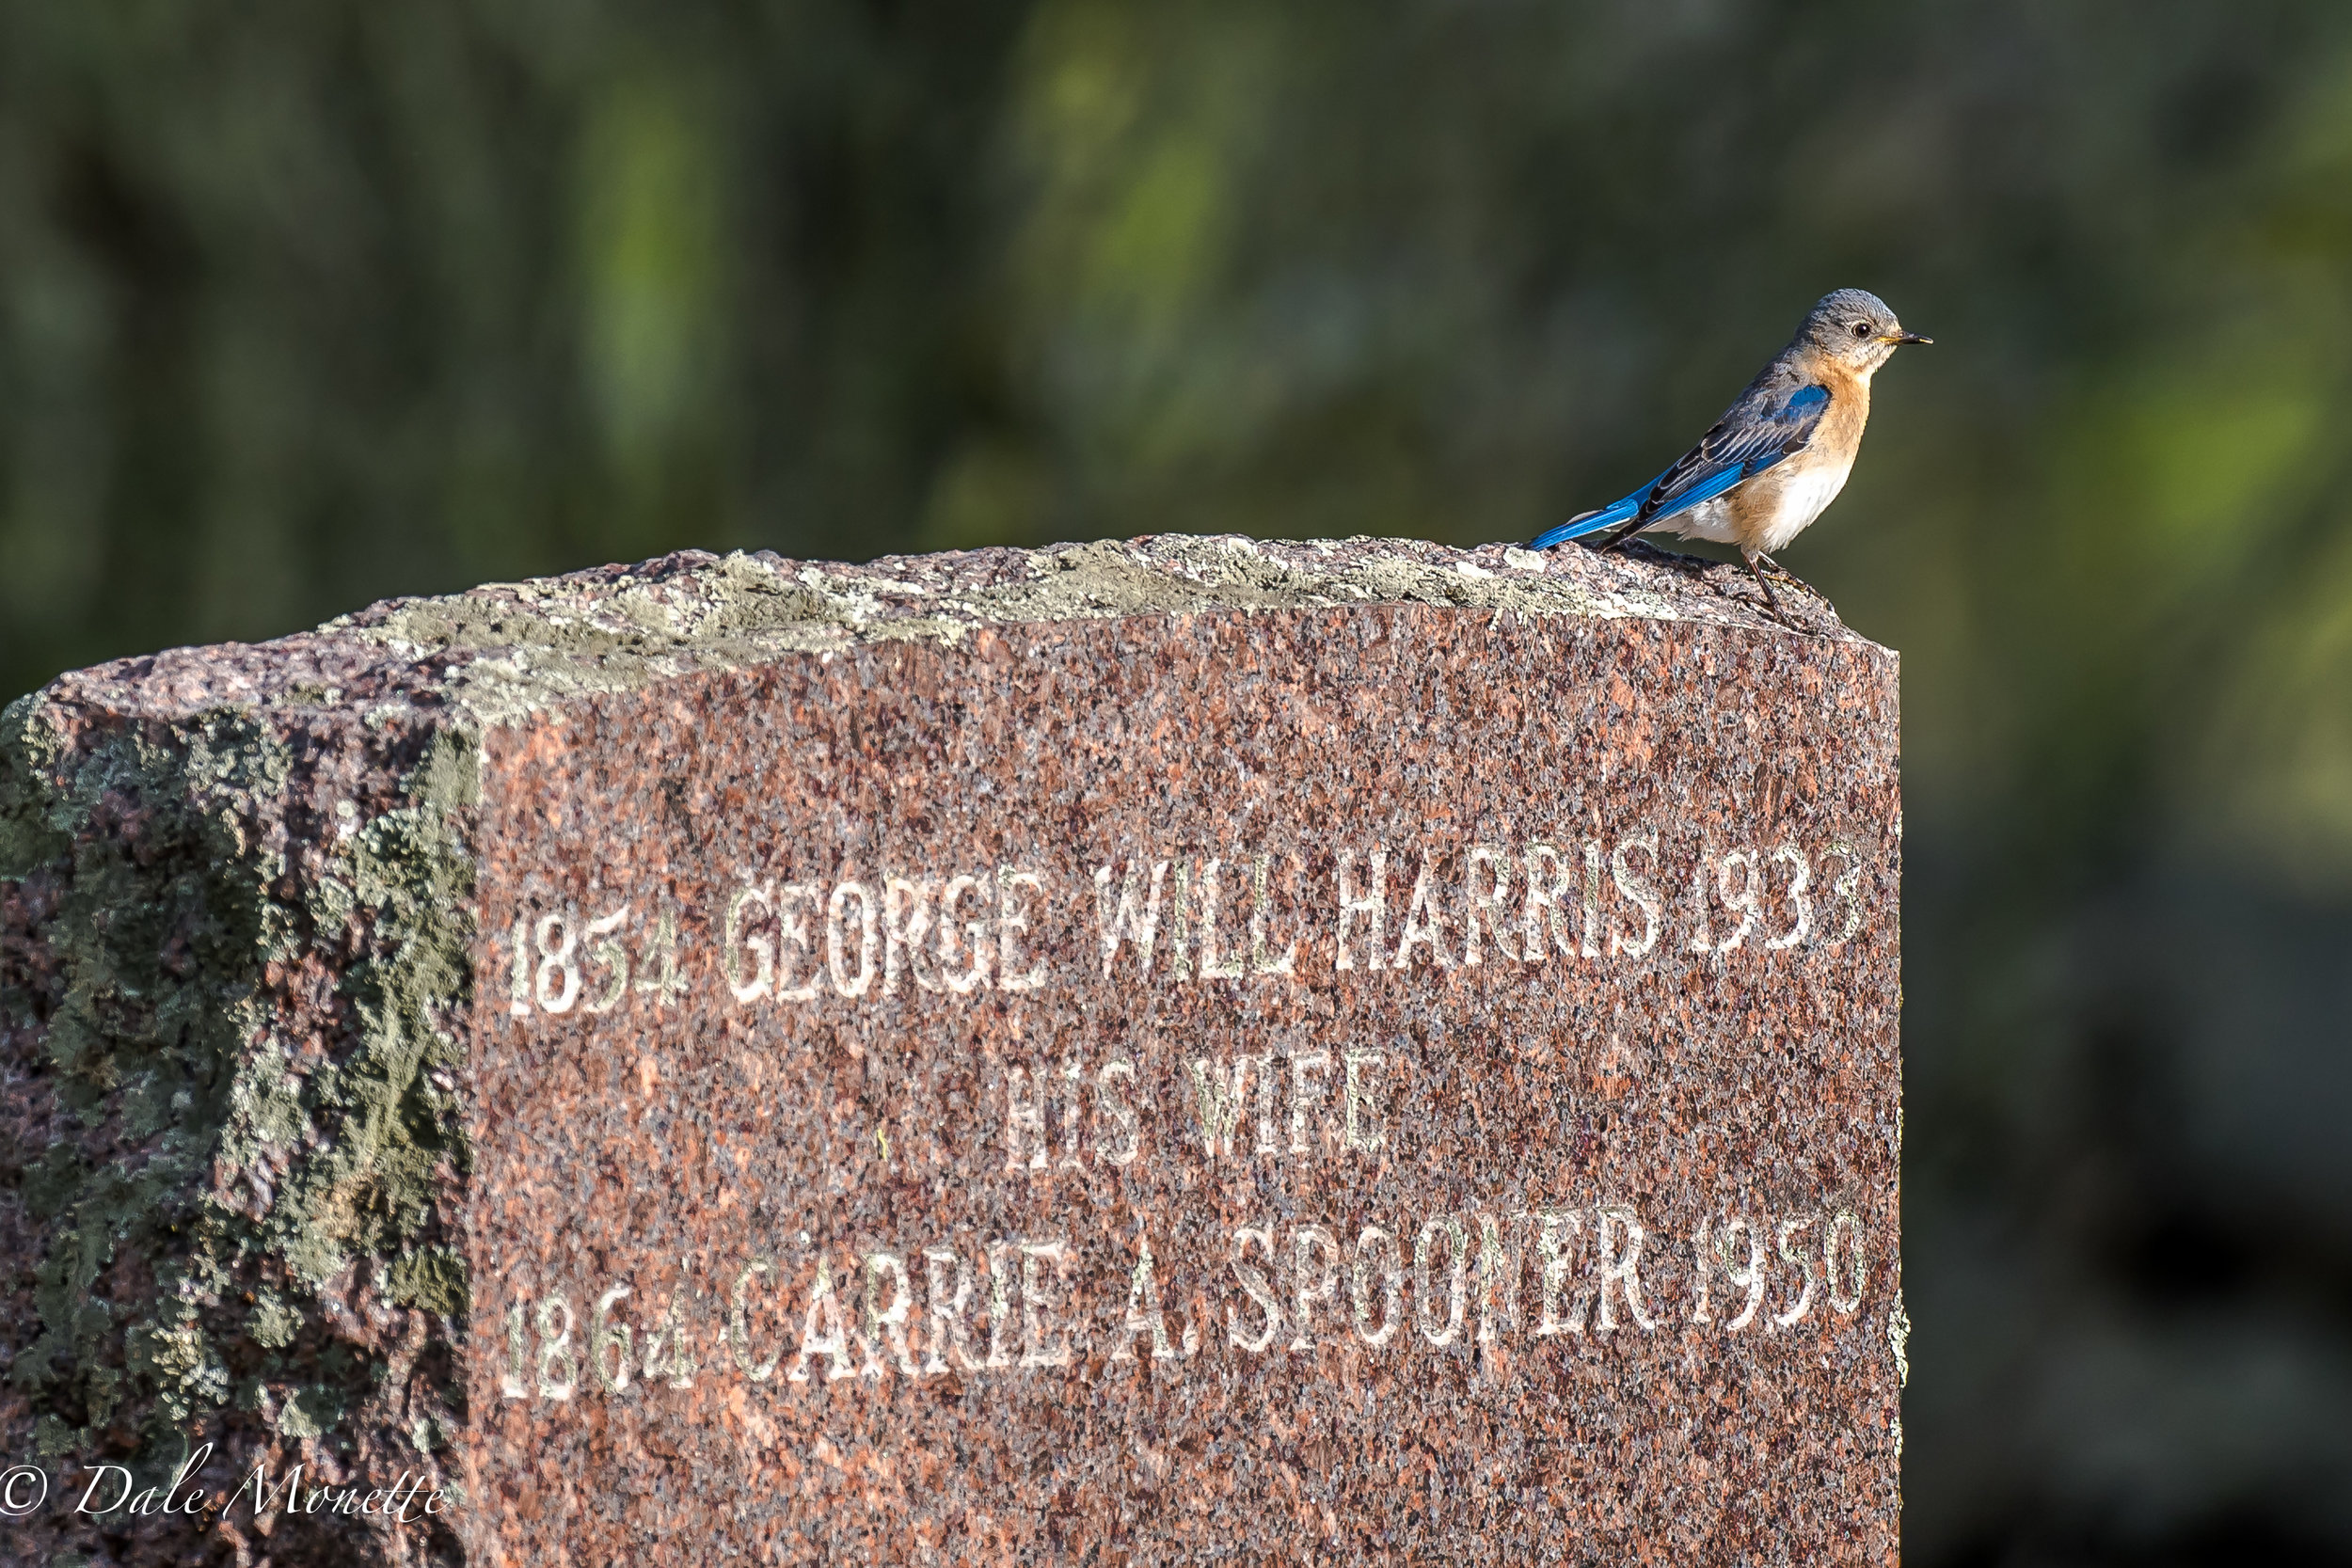 I found a female bluebird sitting on my great grand parents grave stone during my visit there this morning.  I also have a picture with a male in the same place.  5/20/17